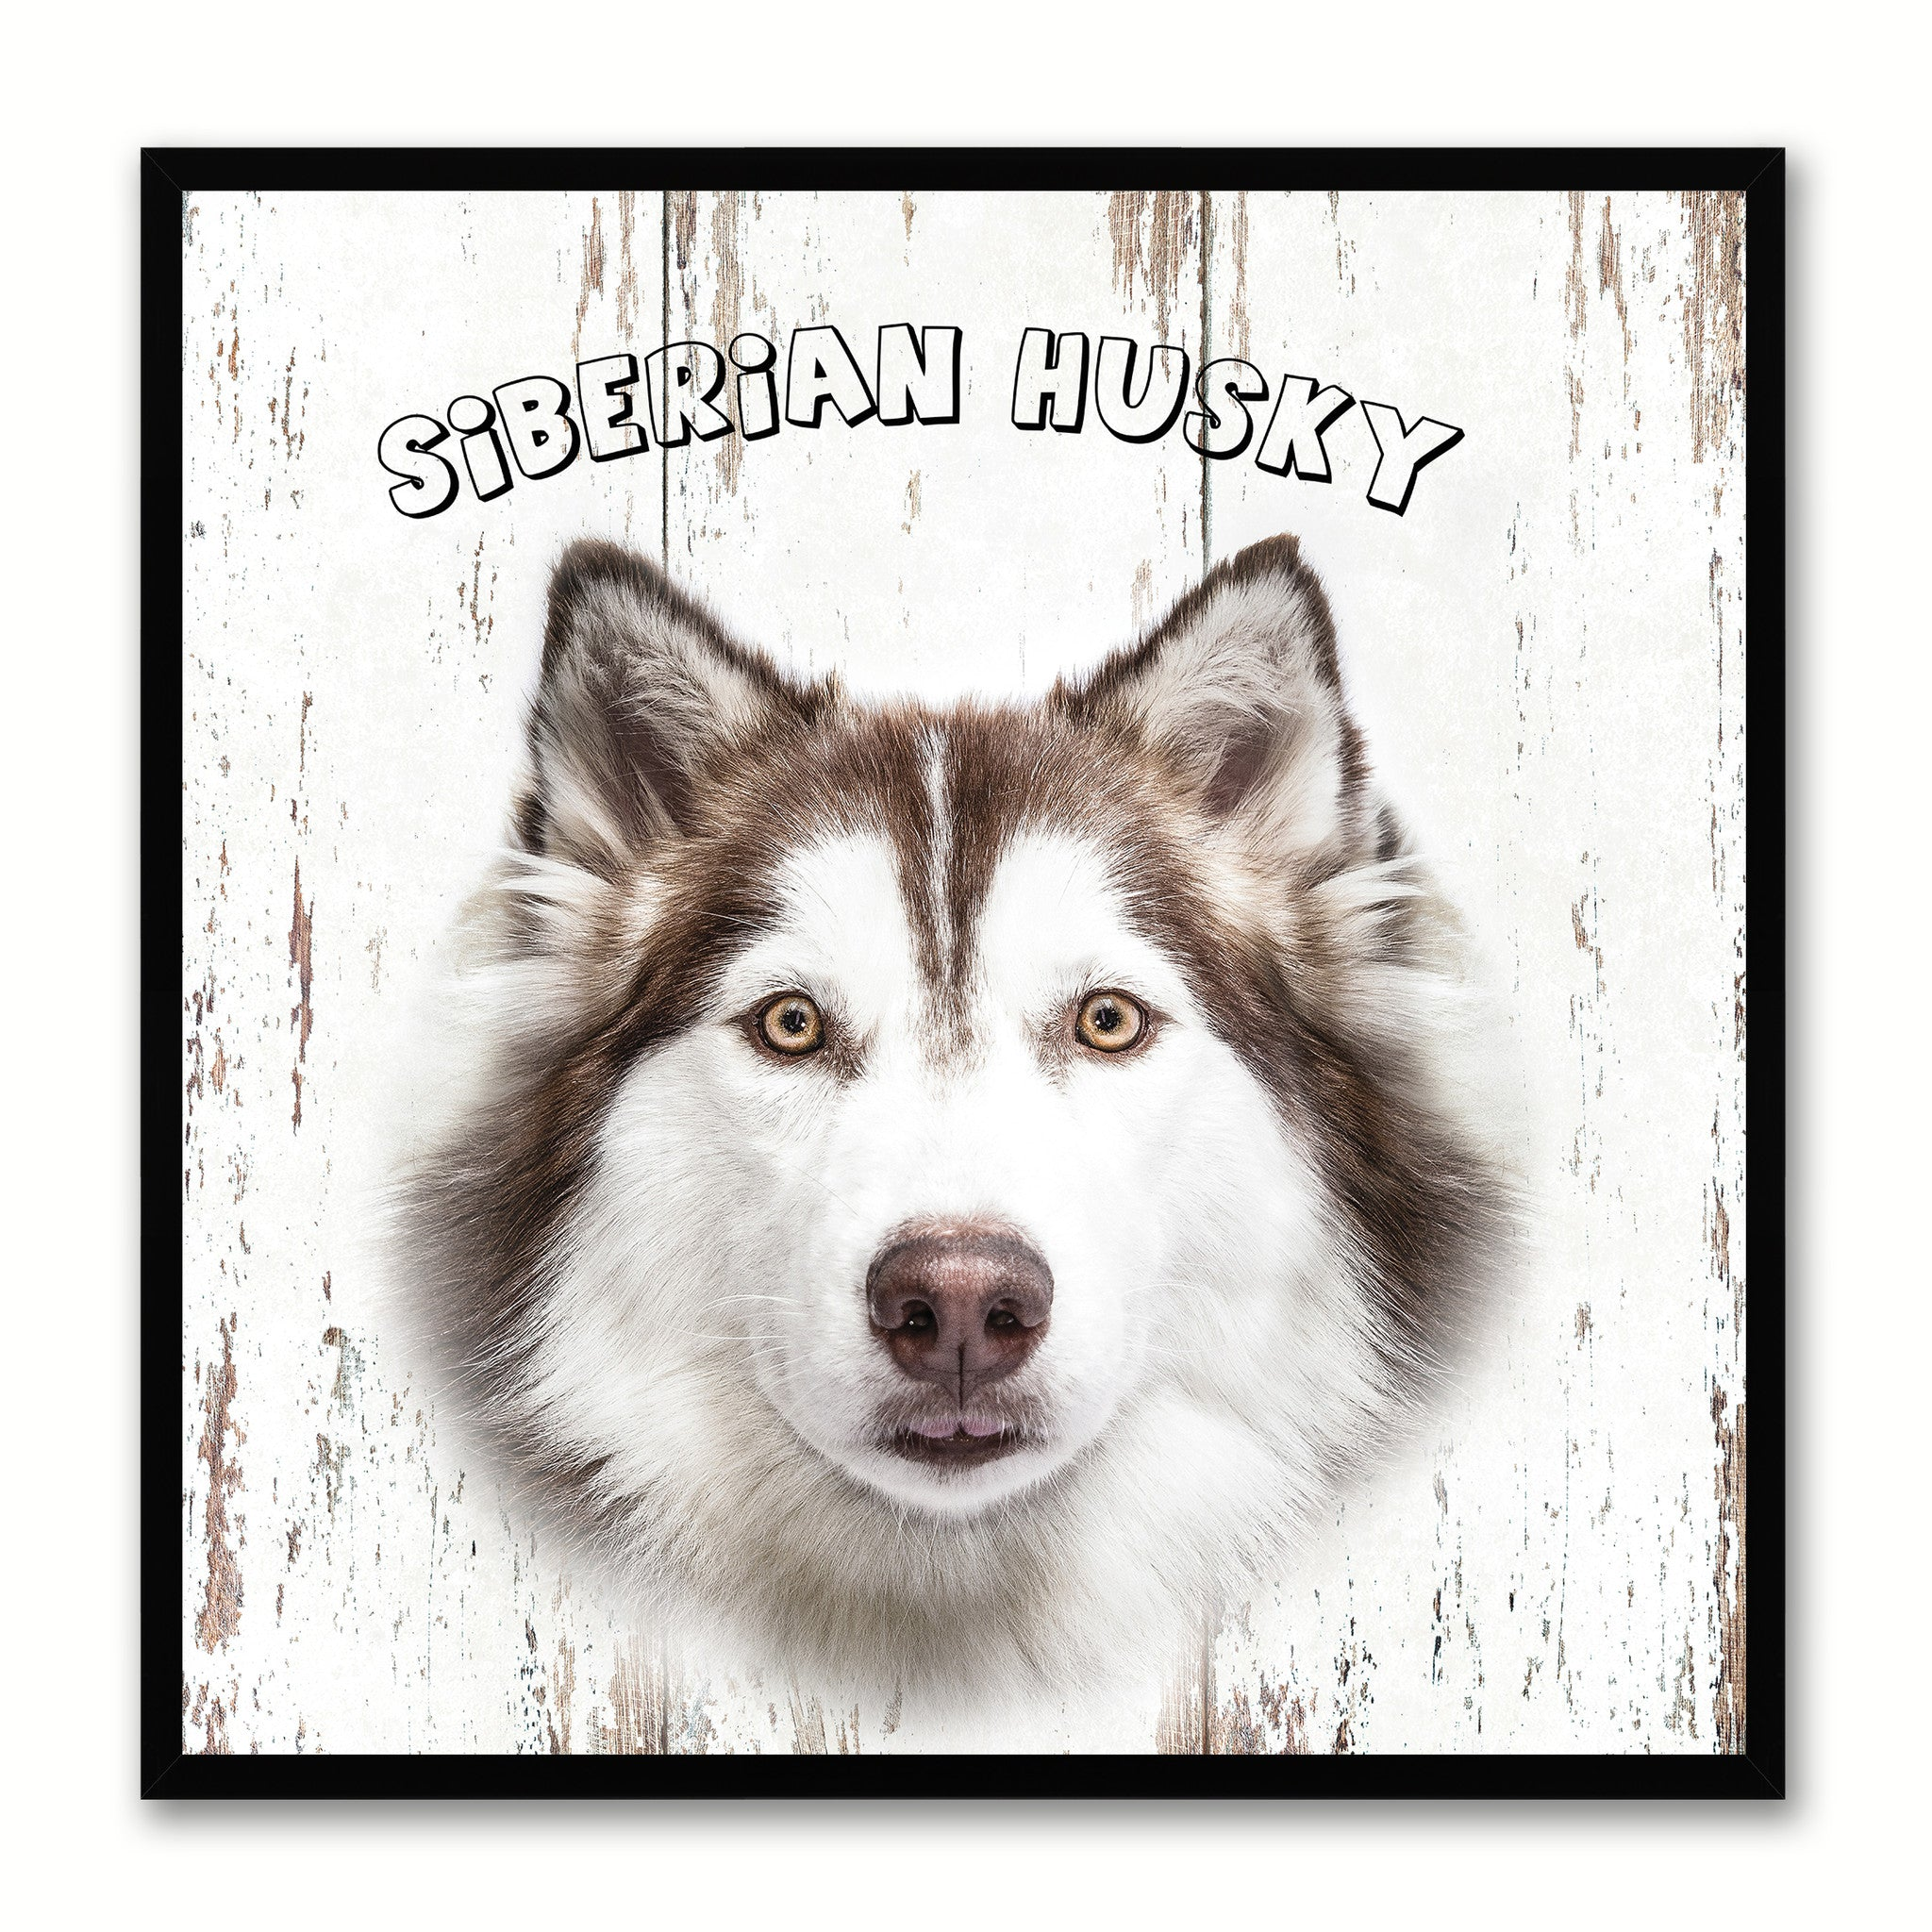 Siberian Husky Dog Canvas Print Picture Frame Gift Home Decor Wall Art  Decoration